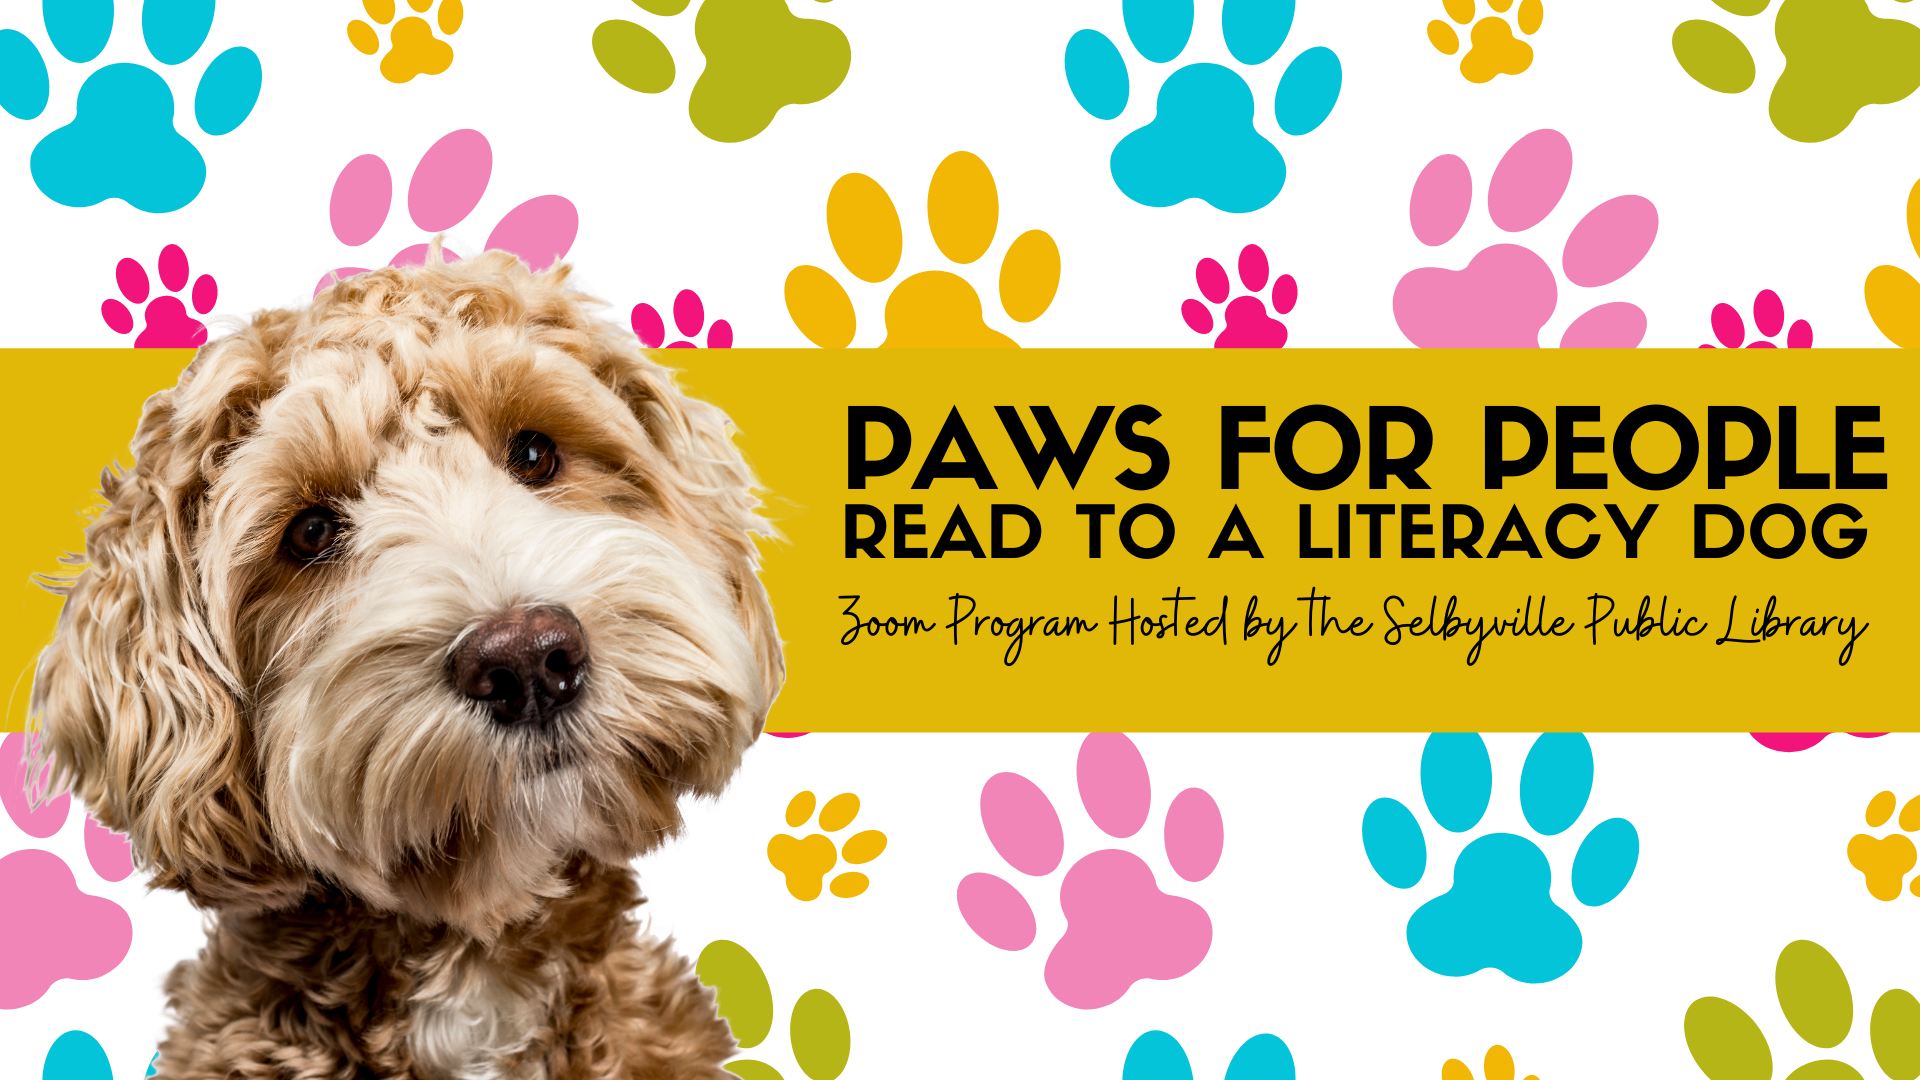 PAWS for People: READ